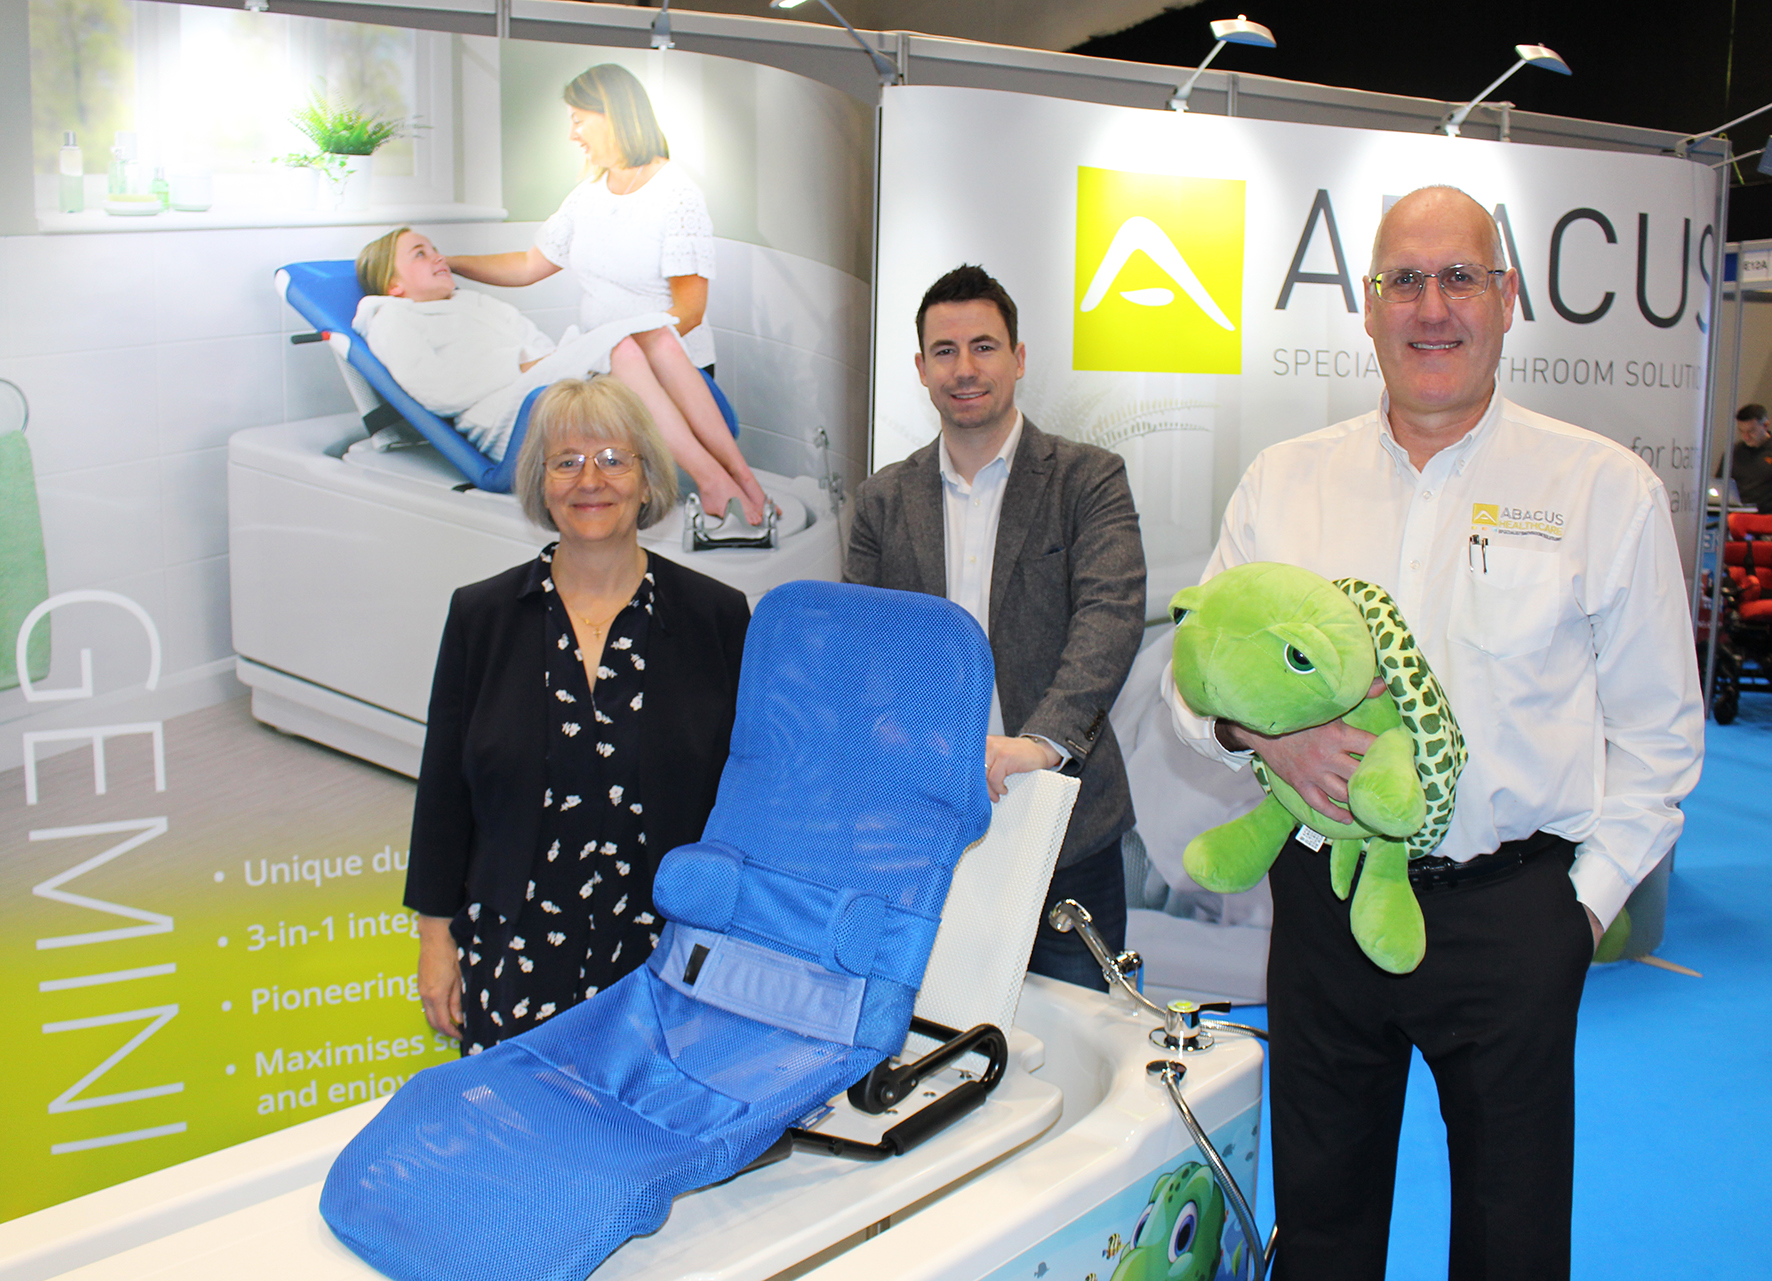 Abacus to present OT CPD seminar and new larger Gemini 2000 bath at Kidz South